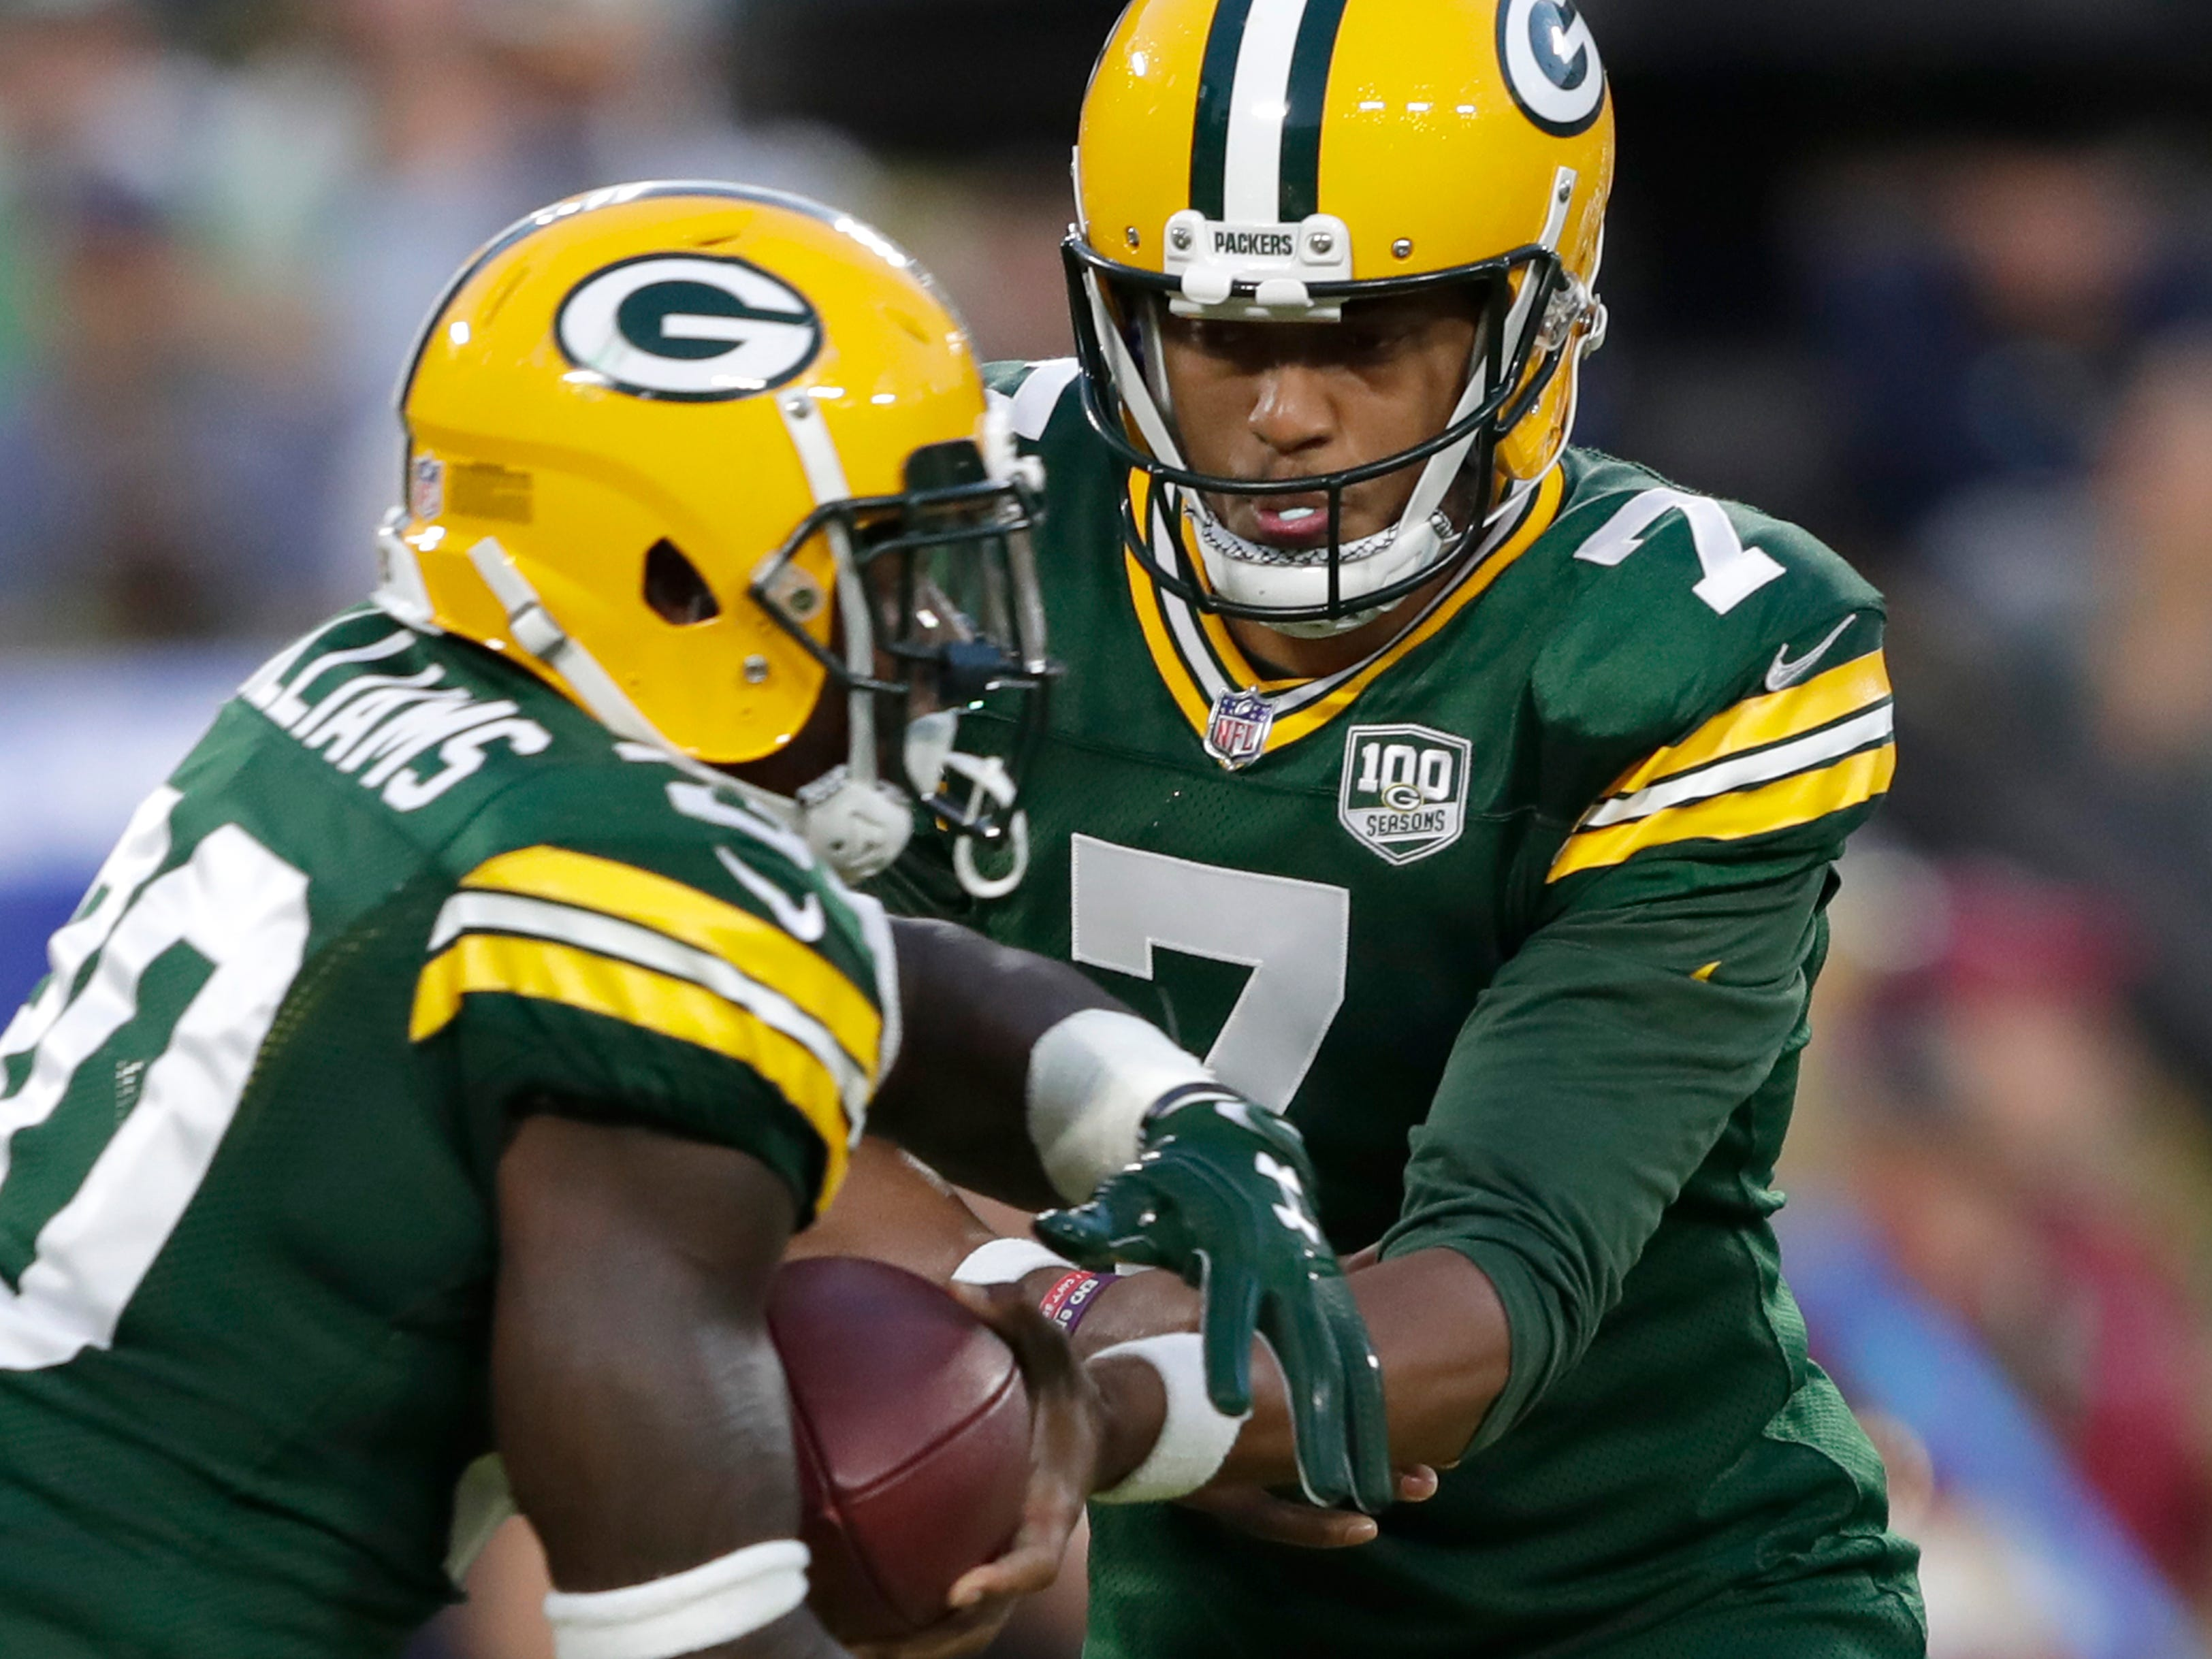 Green Bay Packers quarterback Brett Hundley (7) hands off to Jamaal Williams (30) against the Tennessee Titans during their football game Thursday, August 9, 2018, at Lambeau Field in Green Bay, Wis.